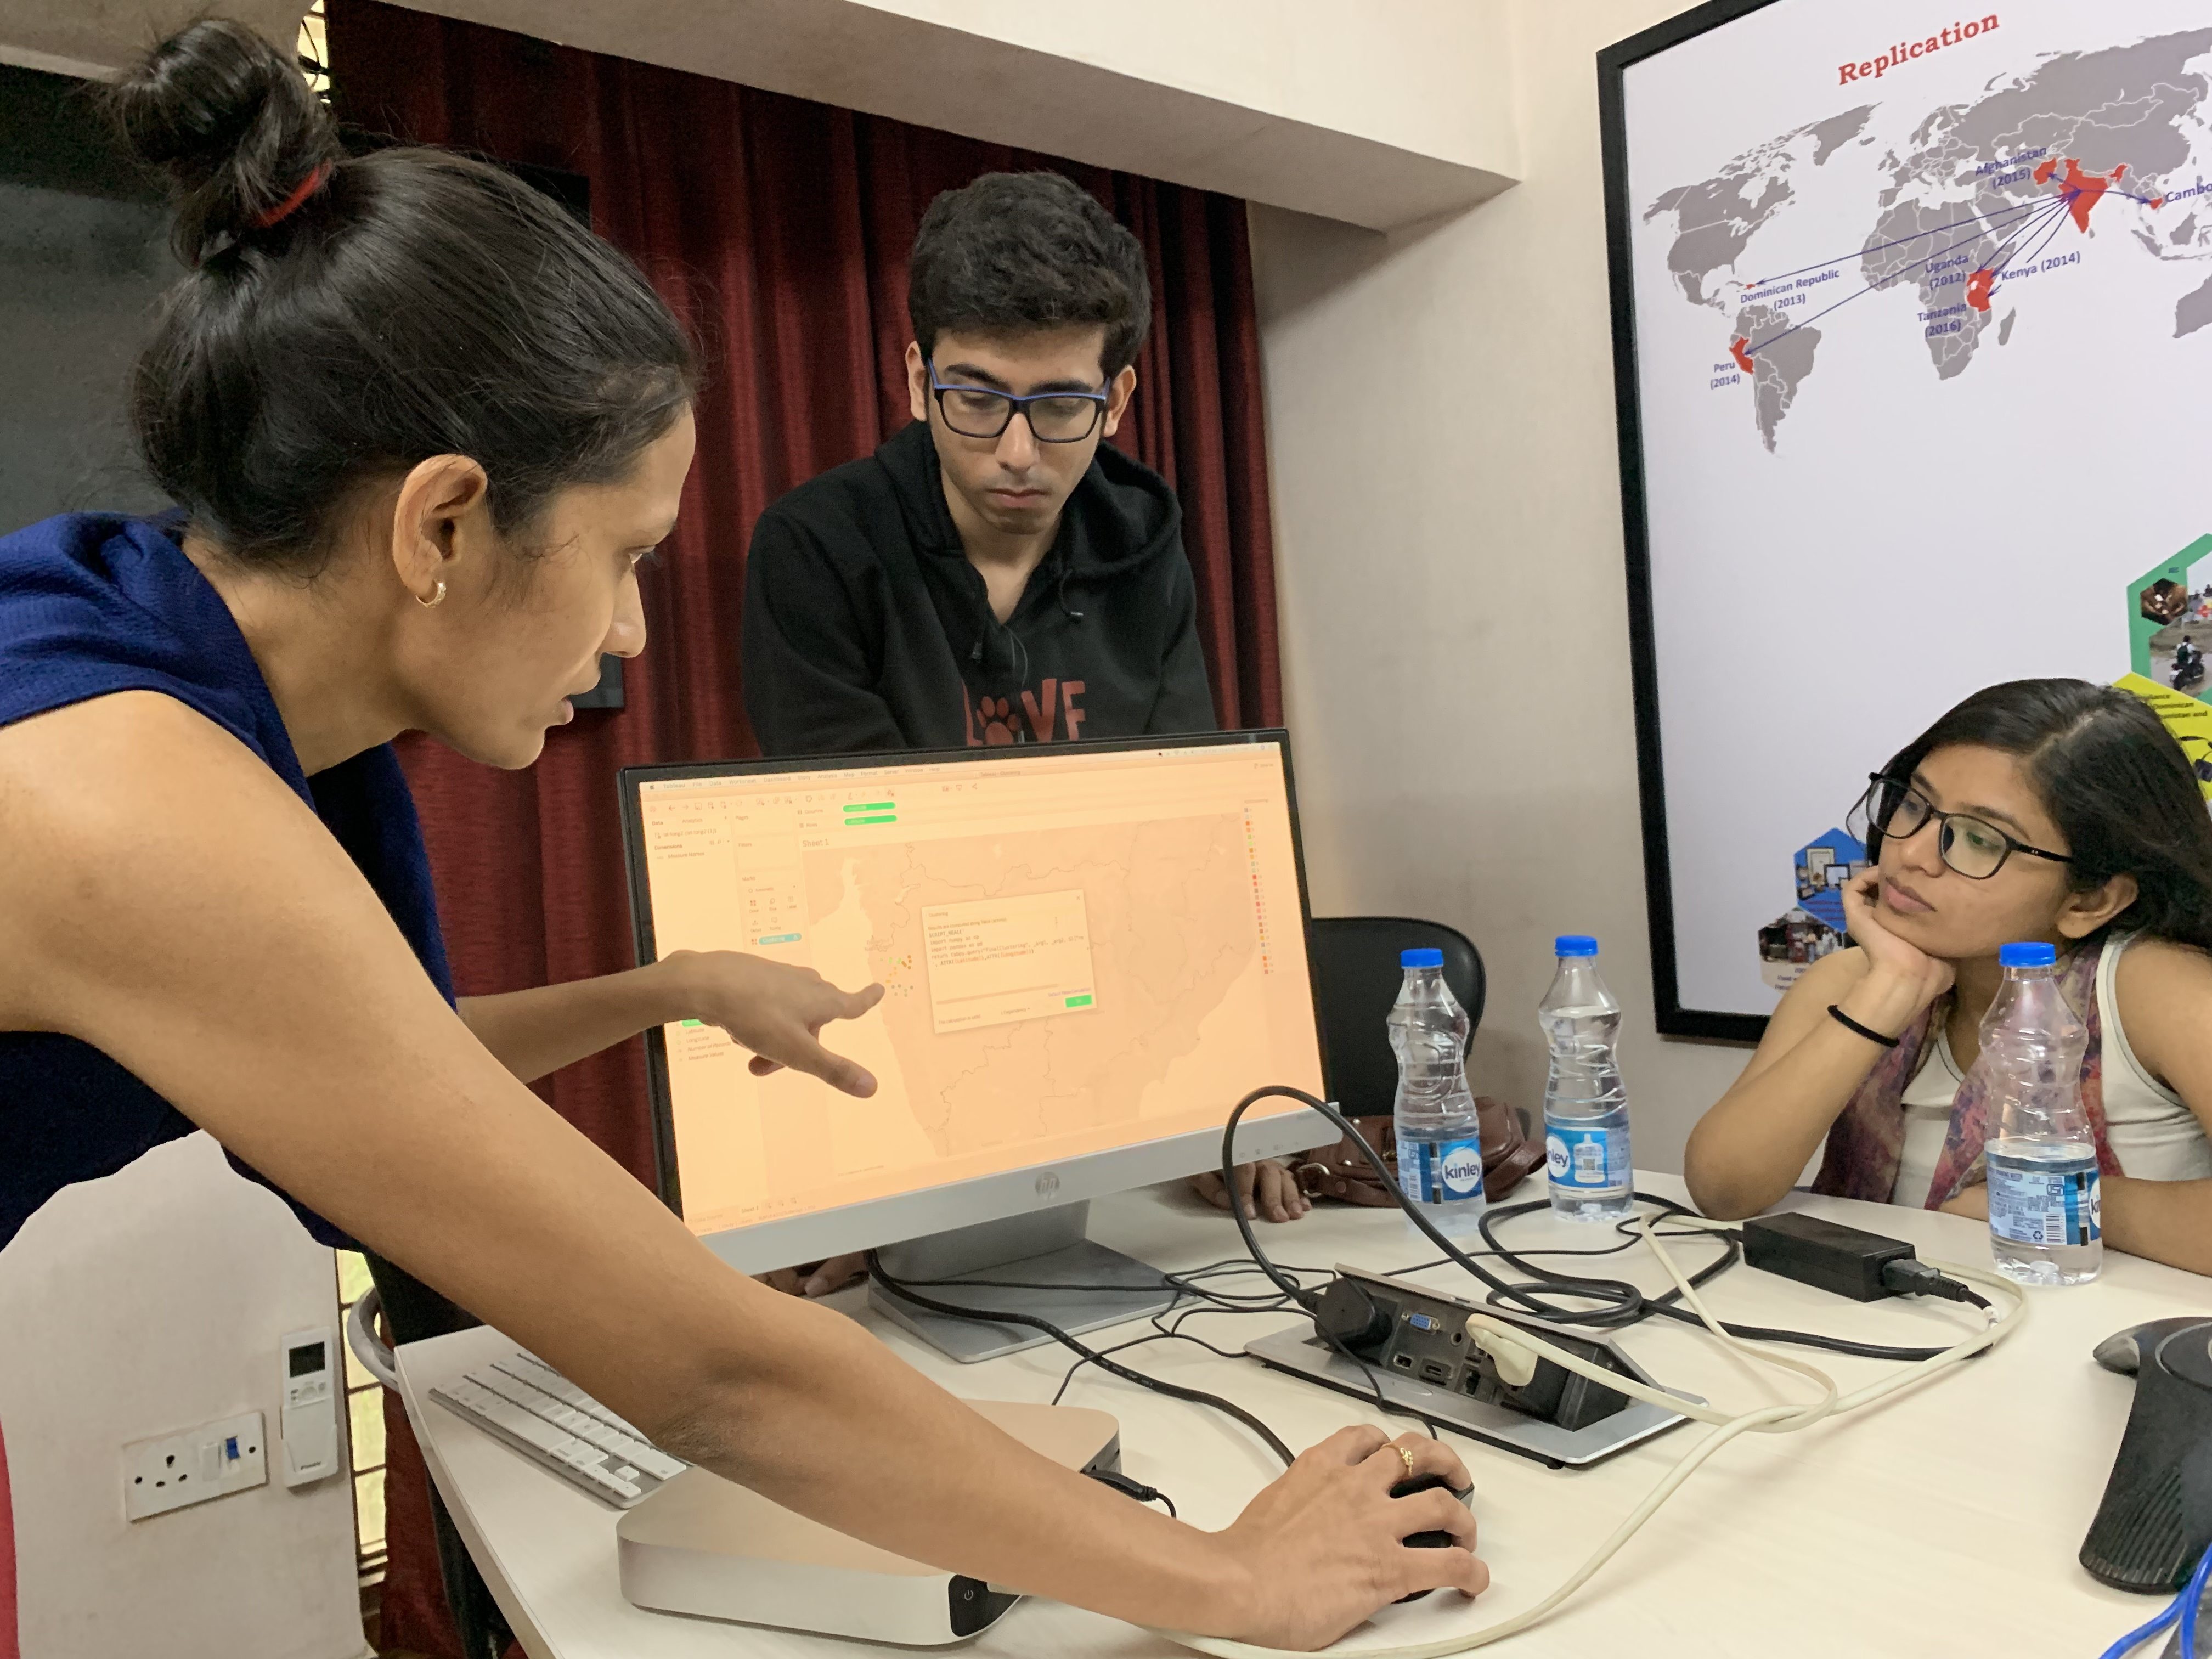 Operation ASHA staff pointing at a computer screen showing data clusters related to tracking TB in India